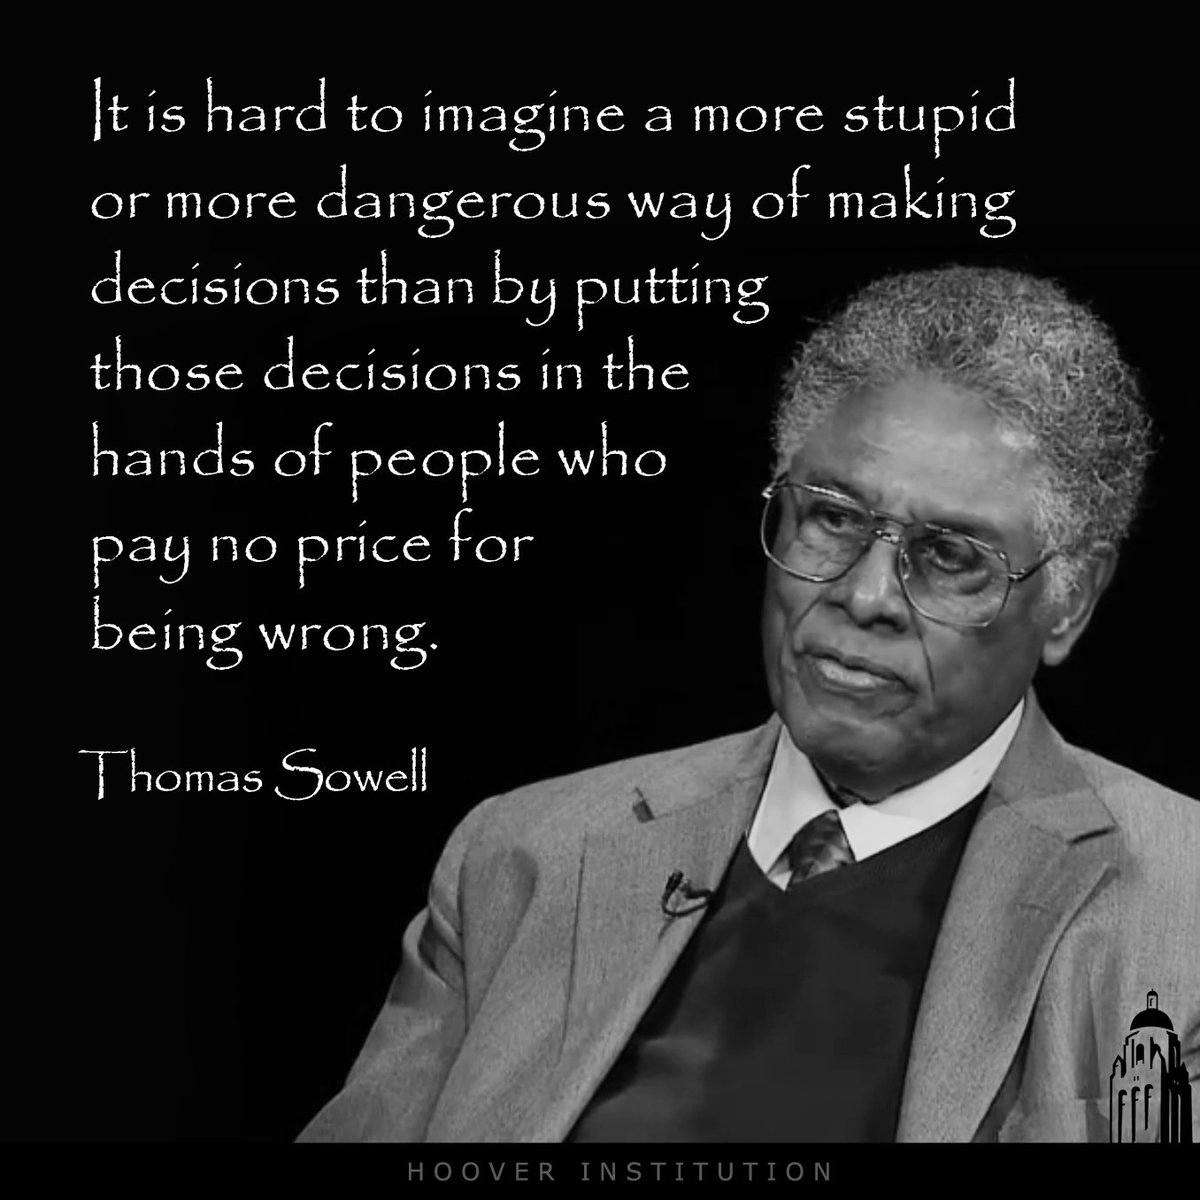 """It is hard to imagine a more stupid or more dangerous way of making decisions..."" https://t.co/HKcuqlxoIr"